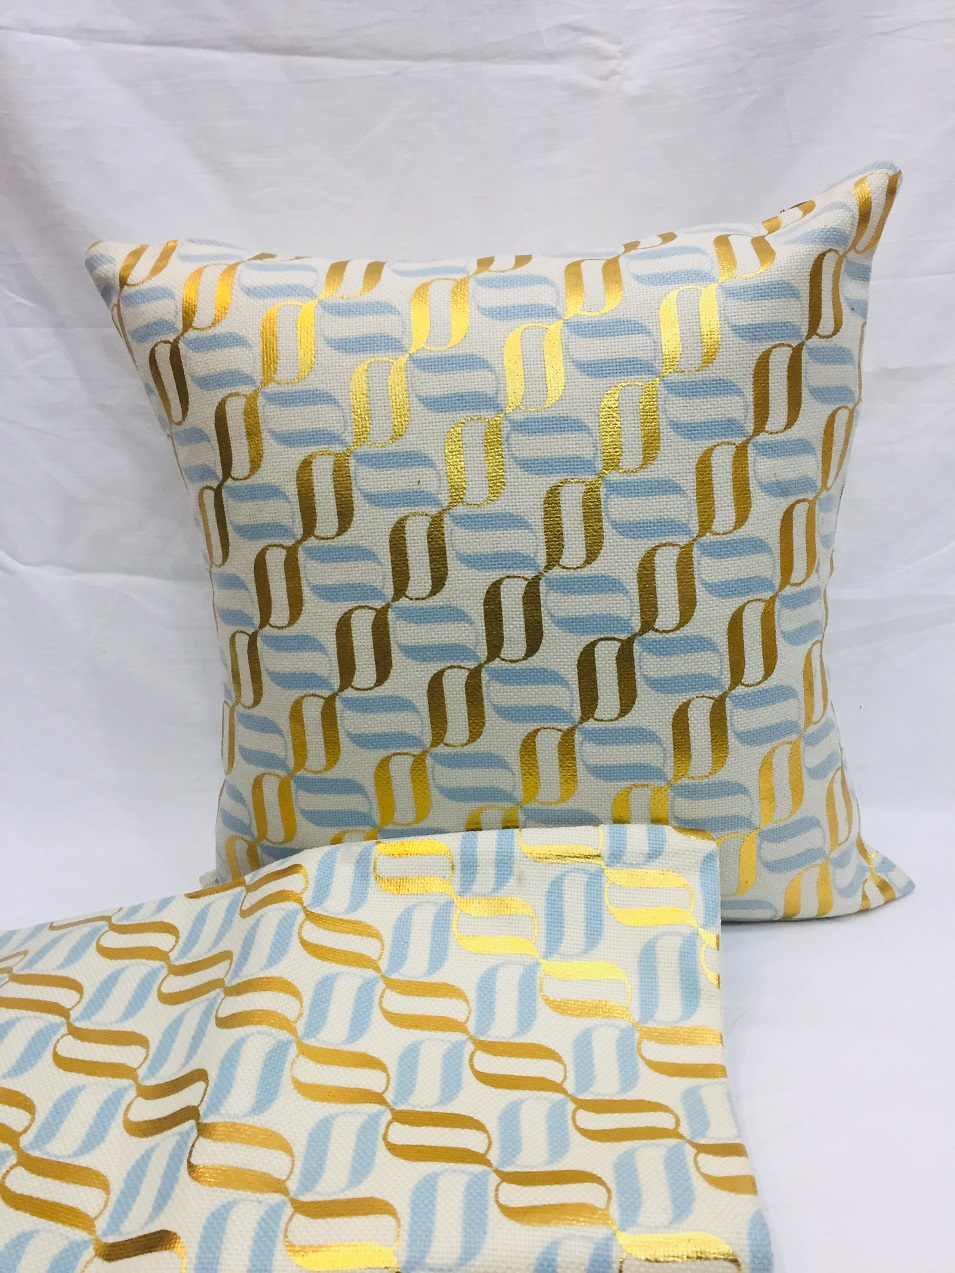 Home Decorative Cushion Covers Gold - 18 x 18 inches